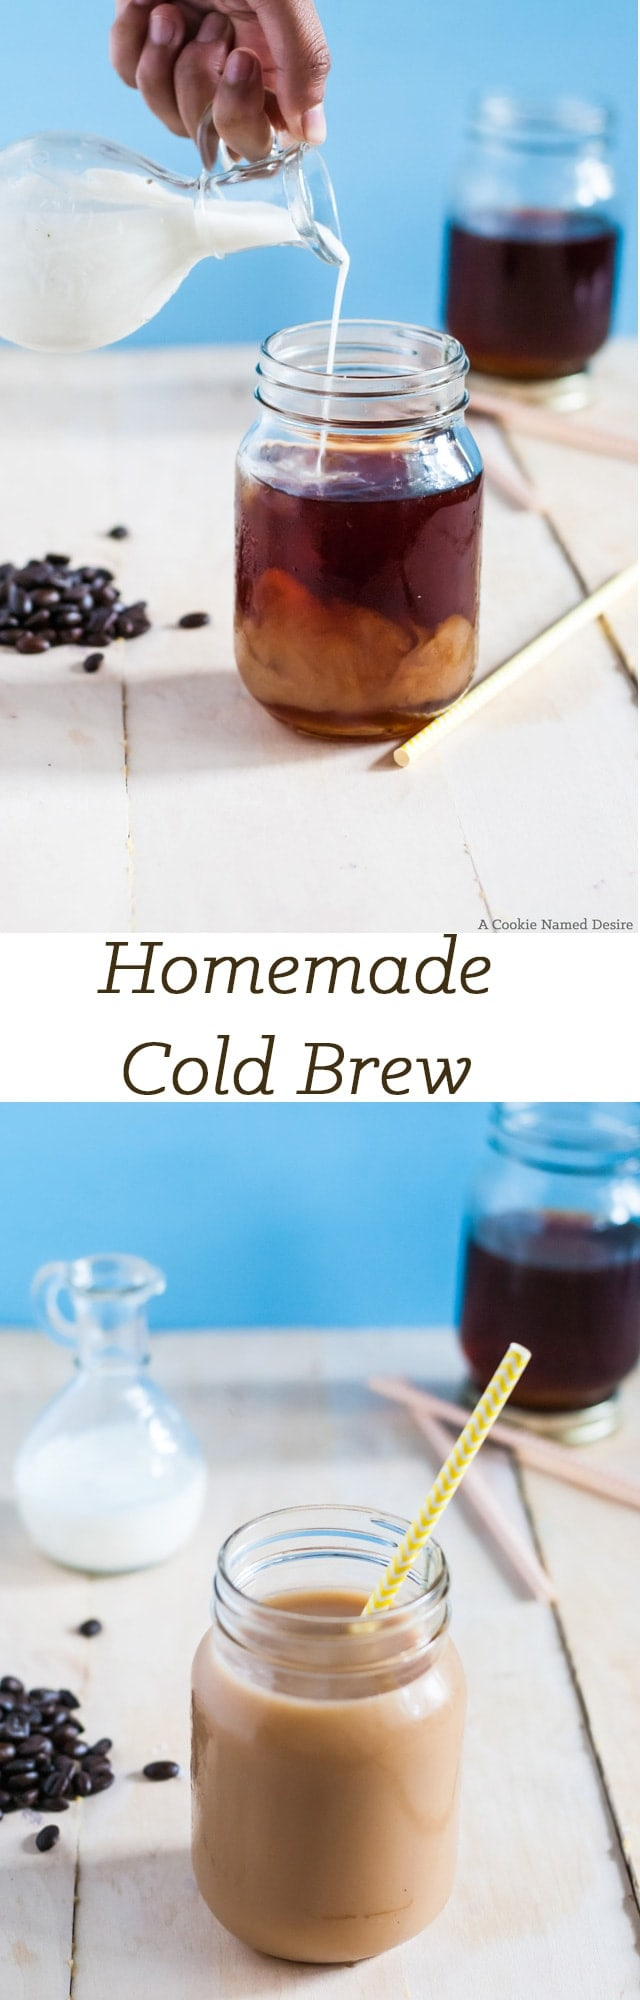 The simplest way to make homemade cold brew coffee without spending a fortune at the coffee shop